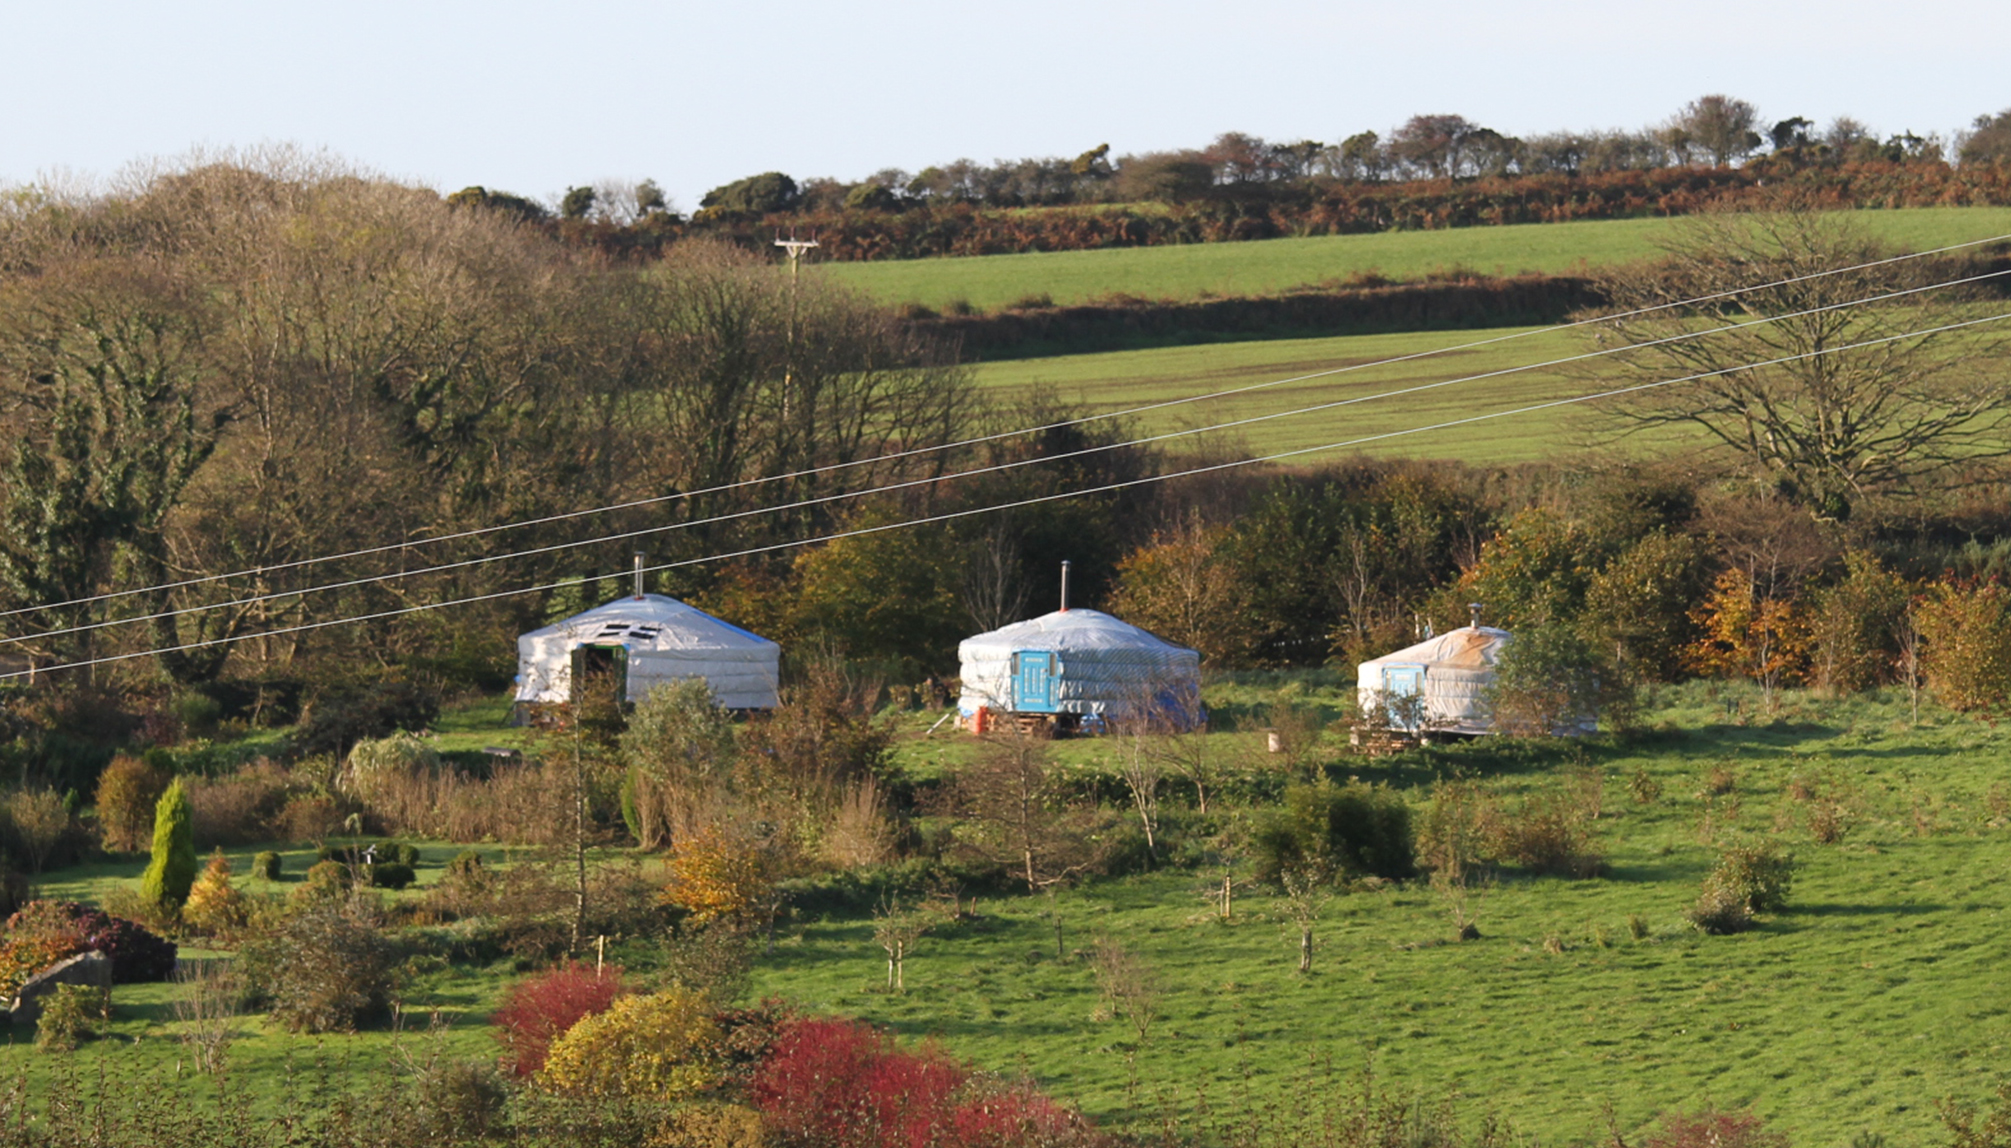 Yurts in a row